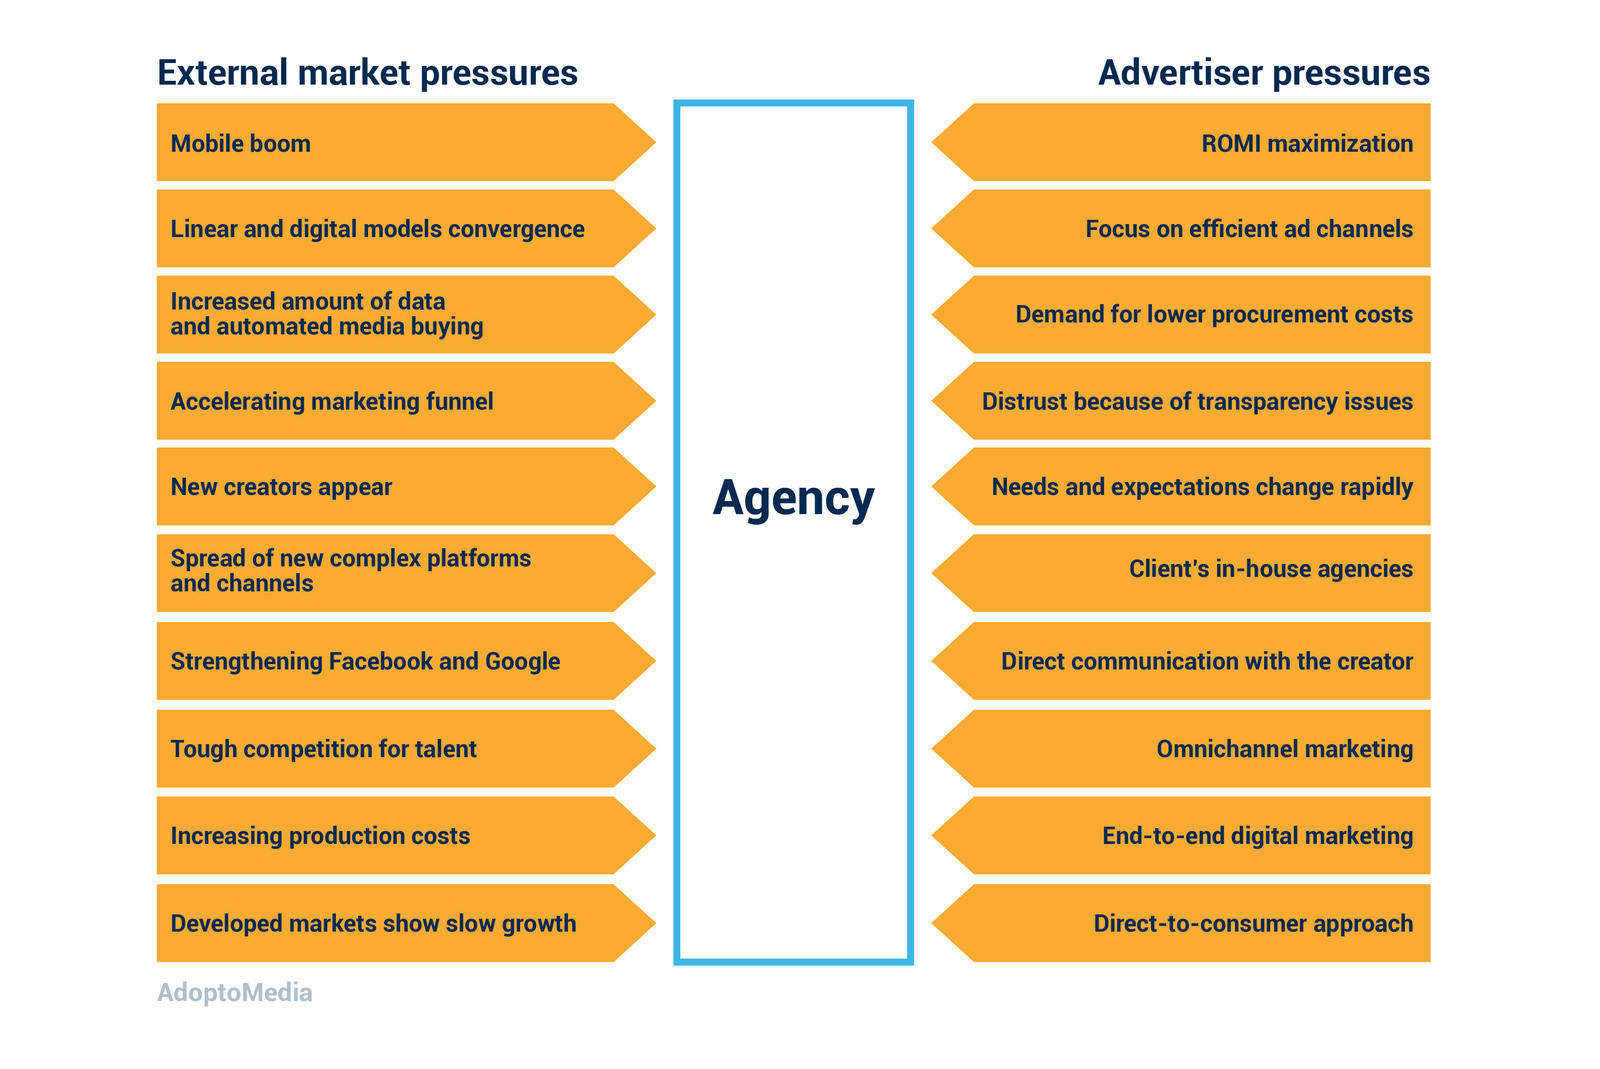 ad agencies, agency model, advertising trends, transparency issues, media buying, ROMI